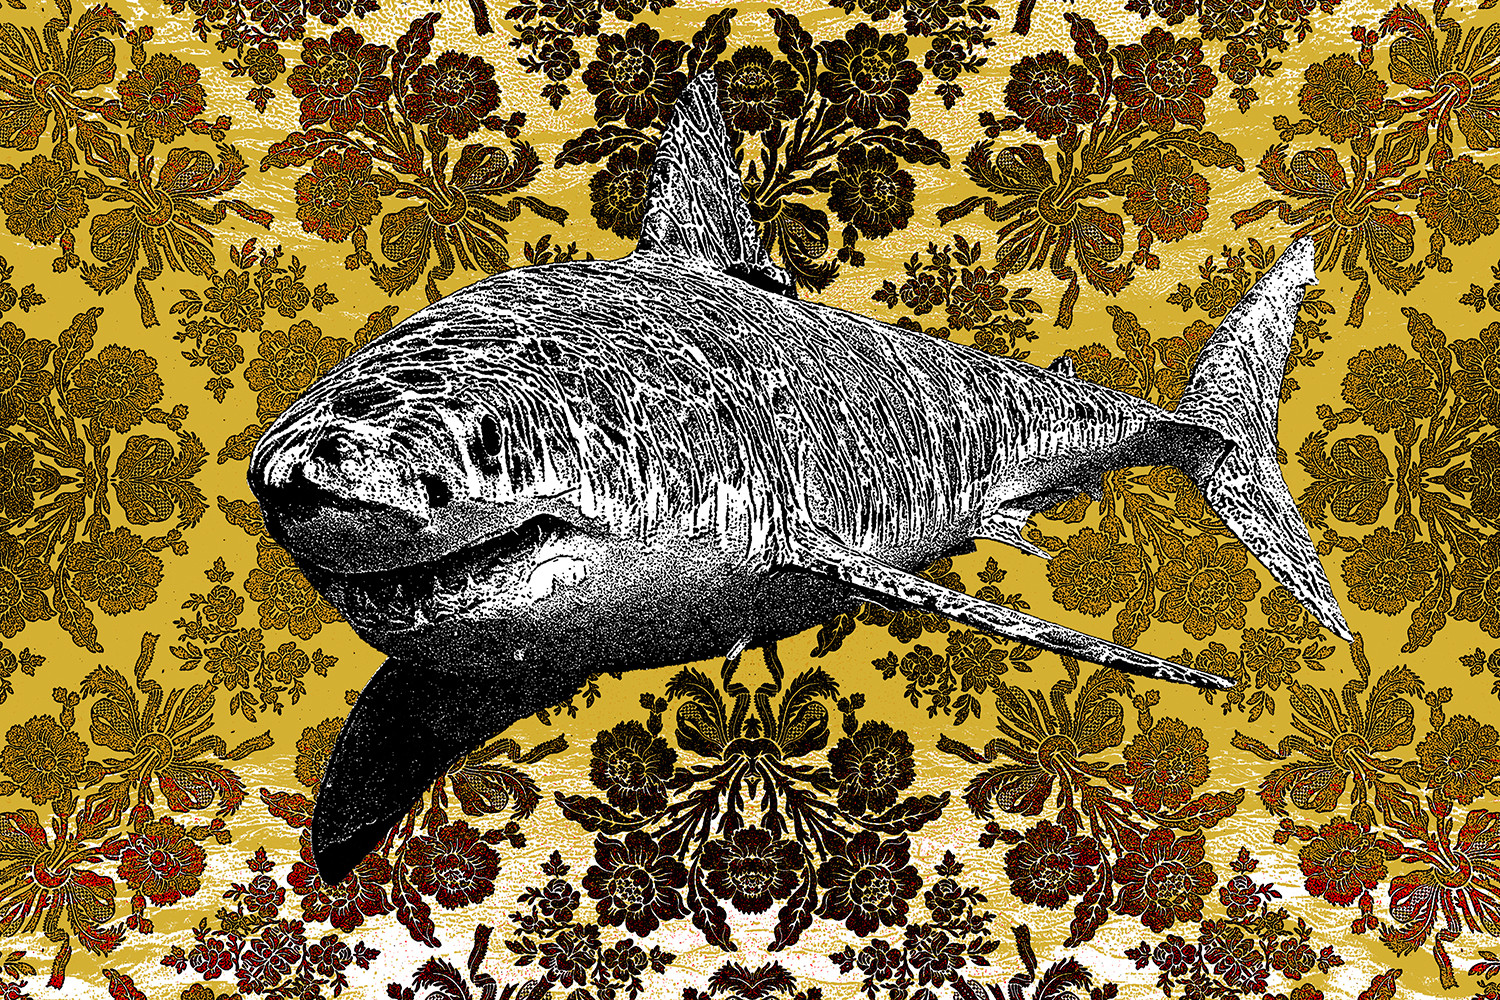 """Blunk Shark"" by Matt Dye.  18"" x 12"" 3-color Screenprint.  Ed of 20 S/N.  $45"